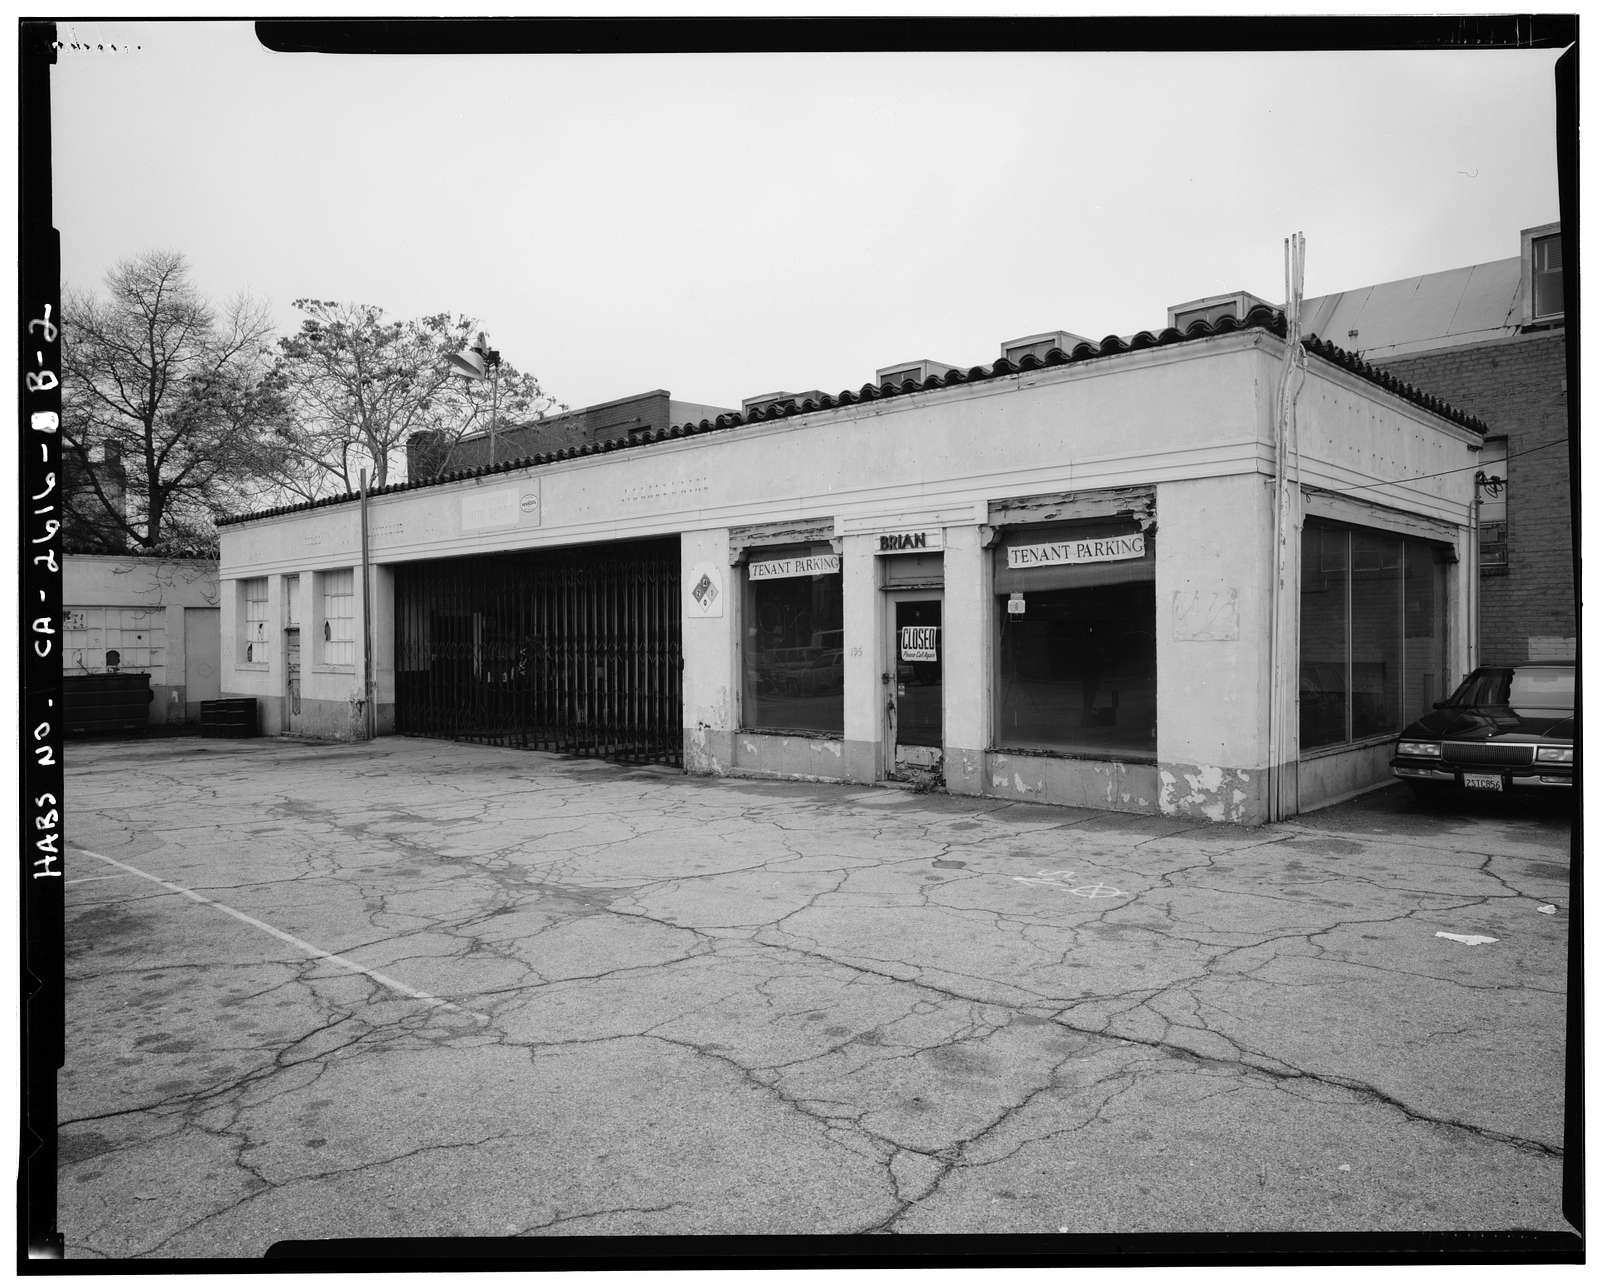 C.F. Forbes Gas Station, Automobile Repair Shop, 195 North Raymond Avenue, Pasadena, Los Angeles County, CA